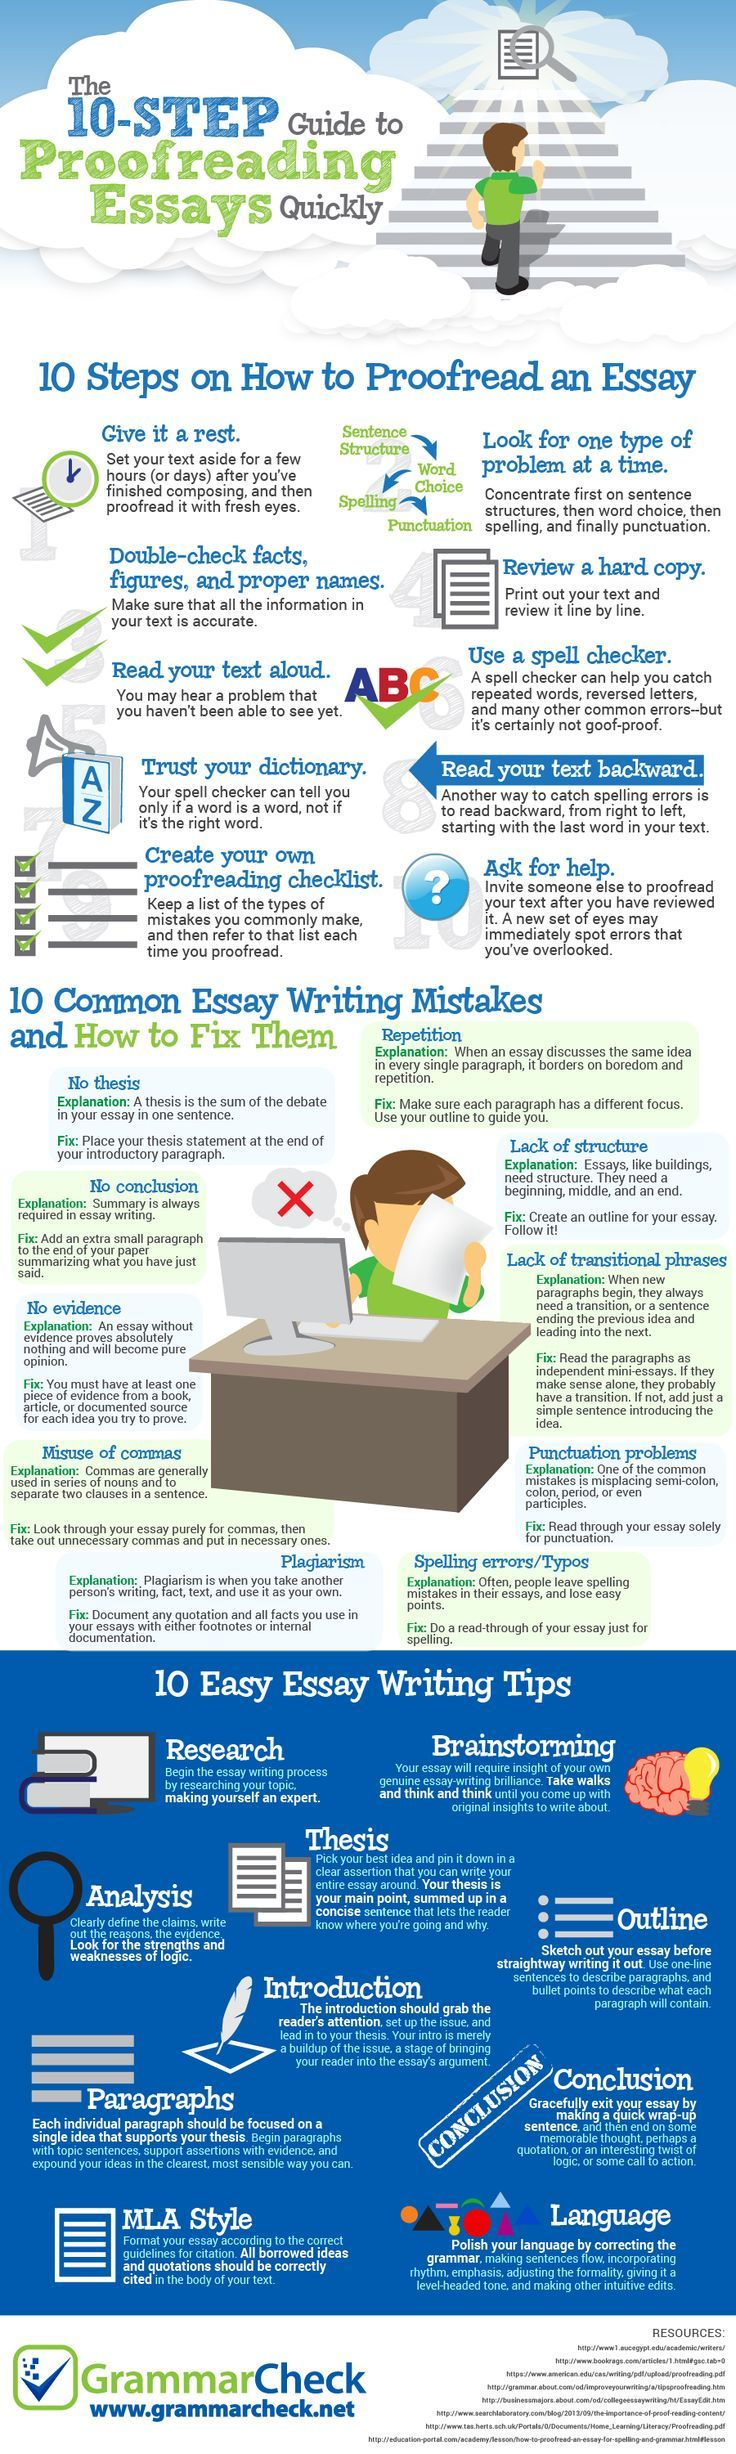 best images about essay writing writing an essay the 10 step guide to proofreading essays quickly infographic topics structurestructure